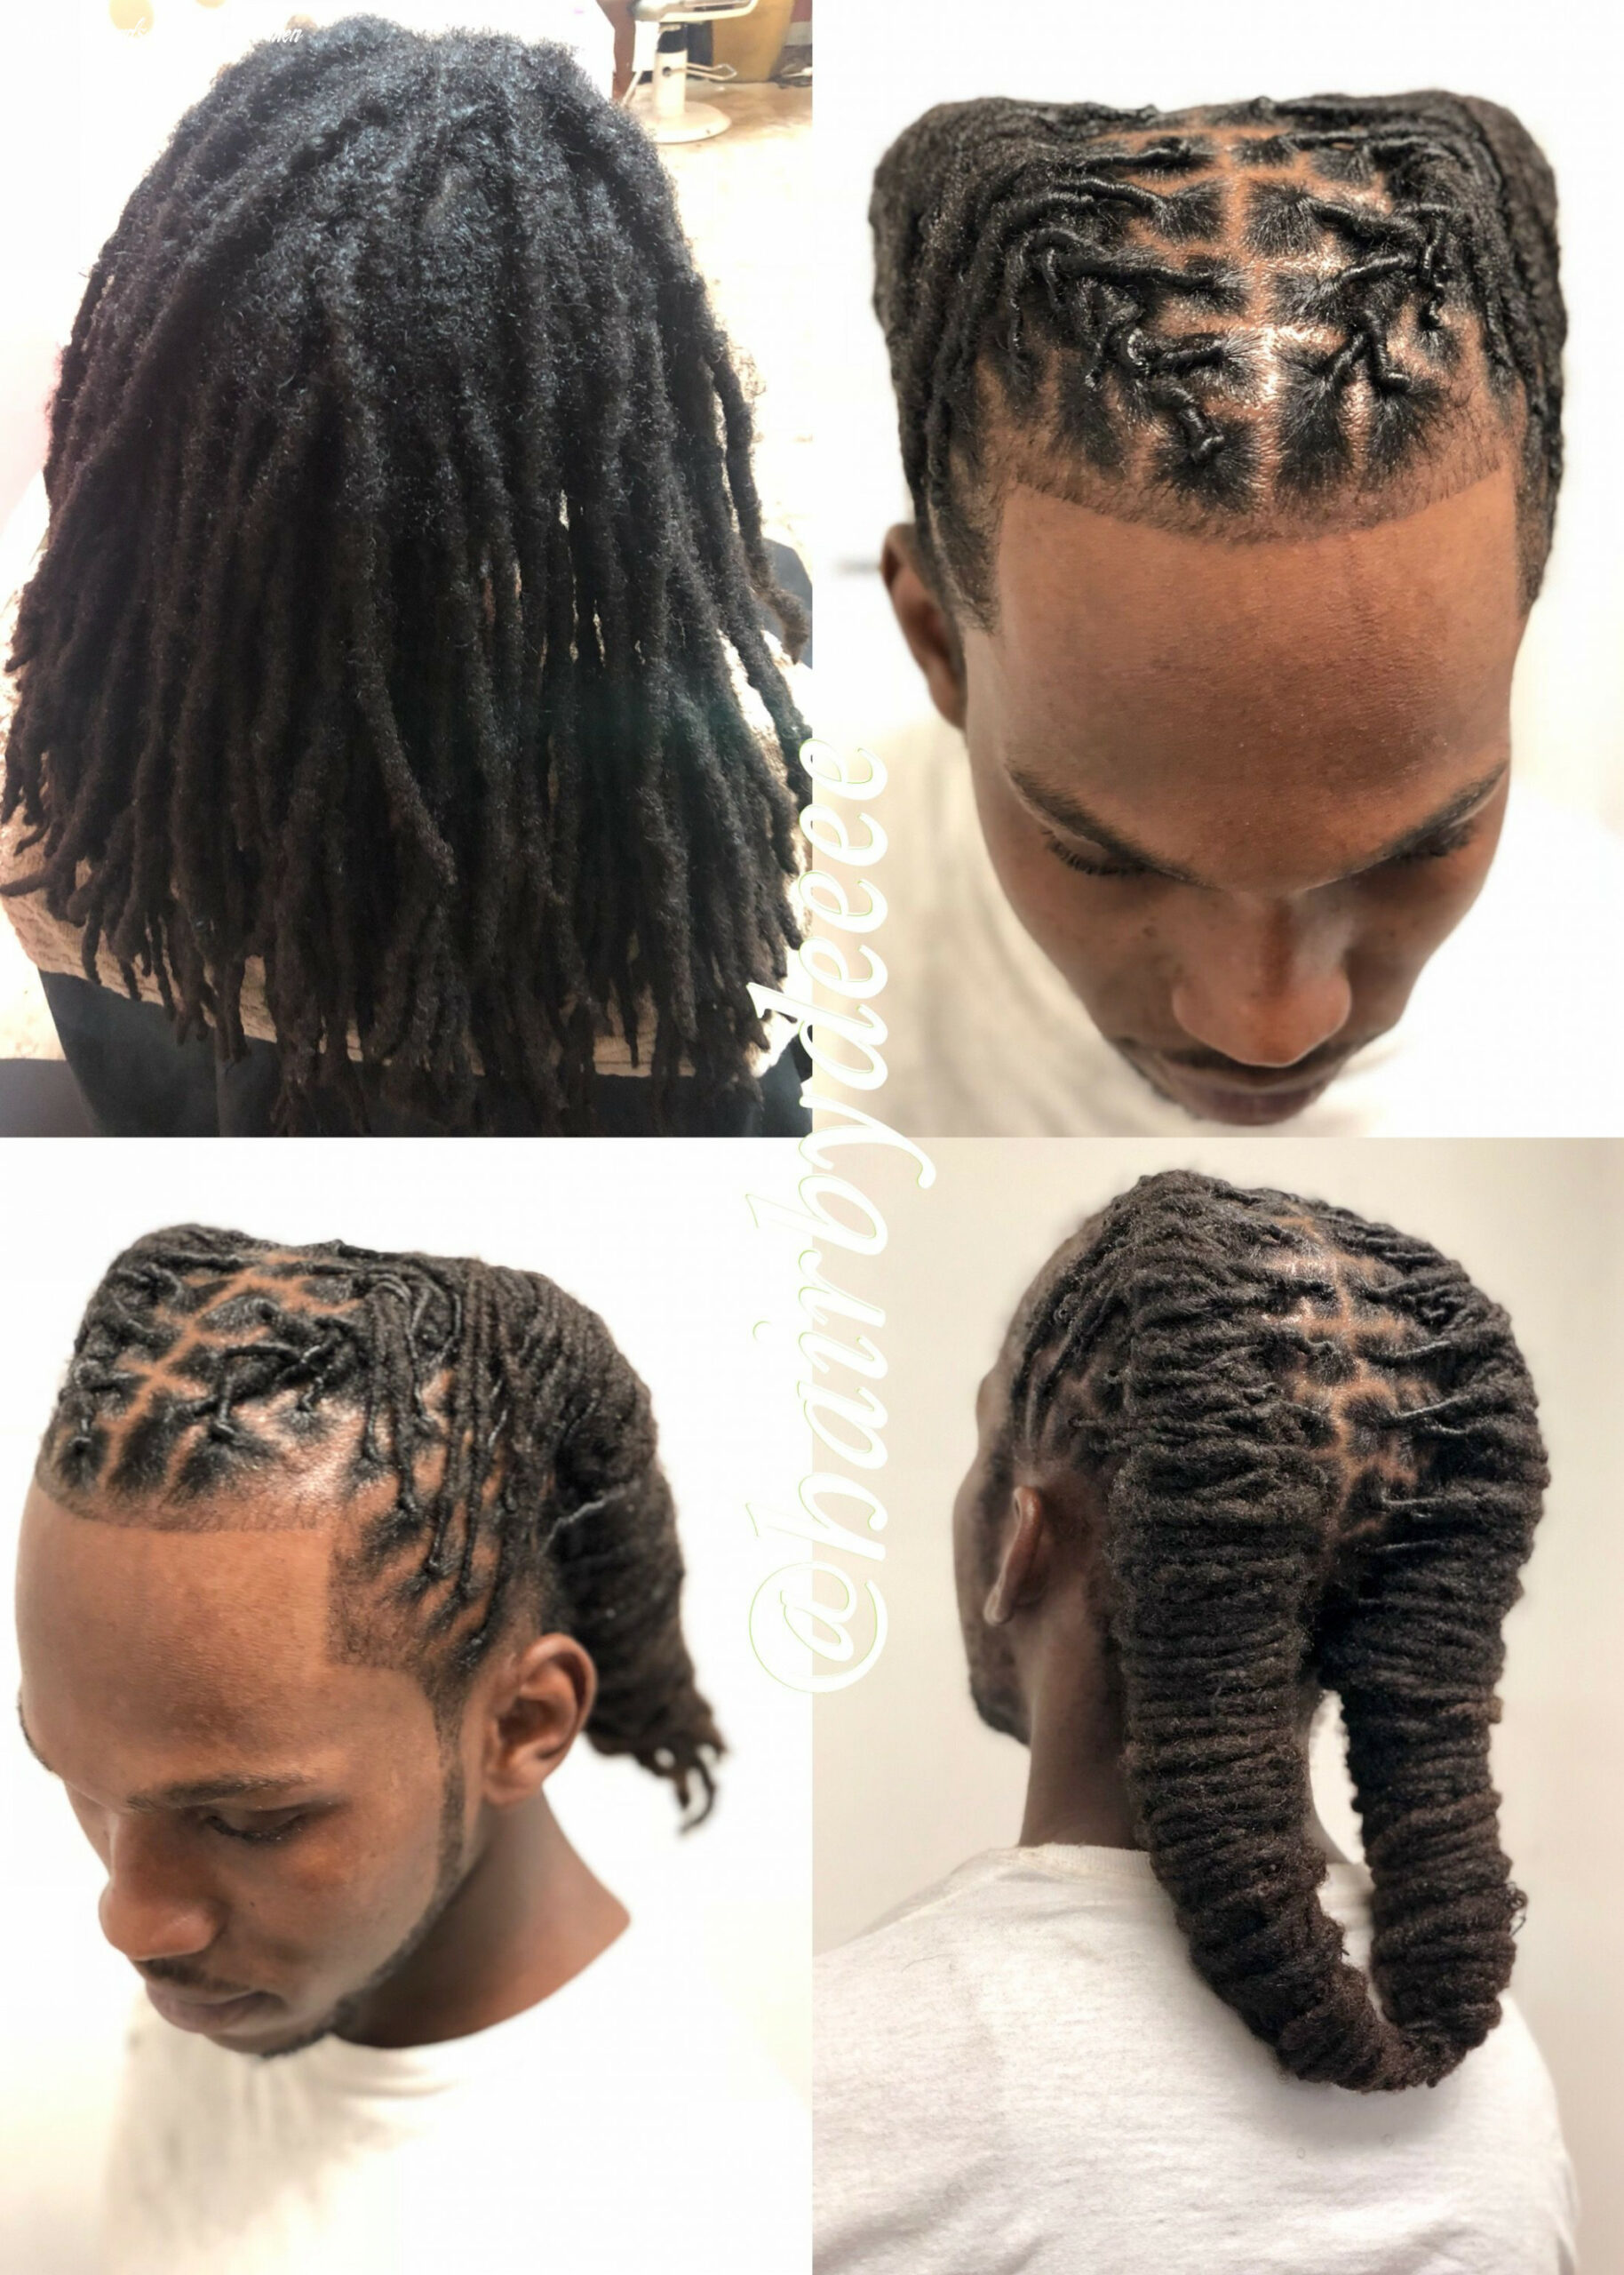 Dreads styles for men | dreads styles, dreadlock hairstyles for